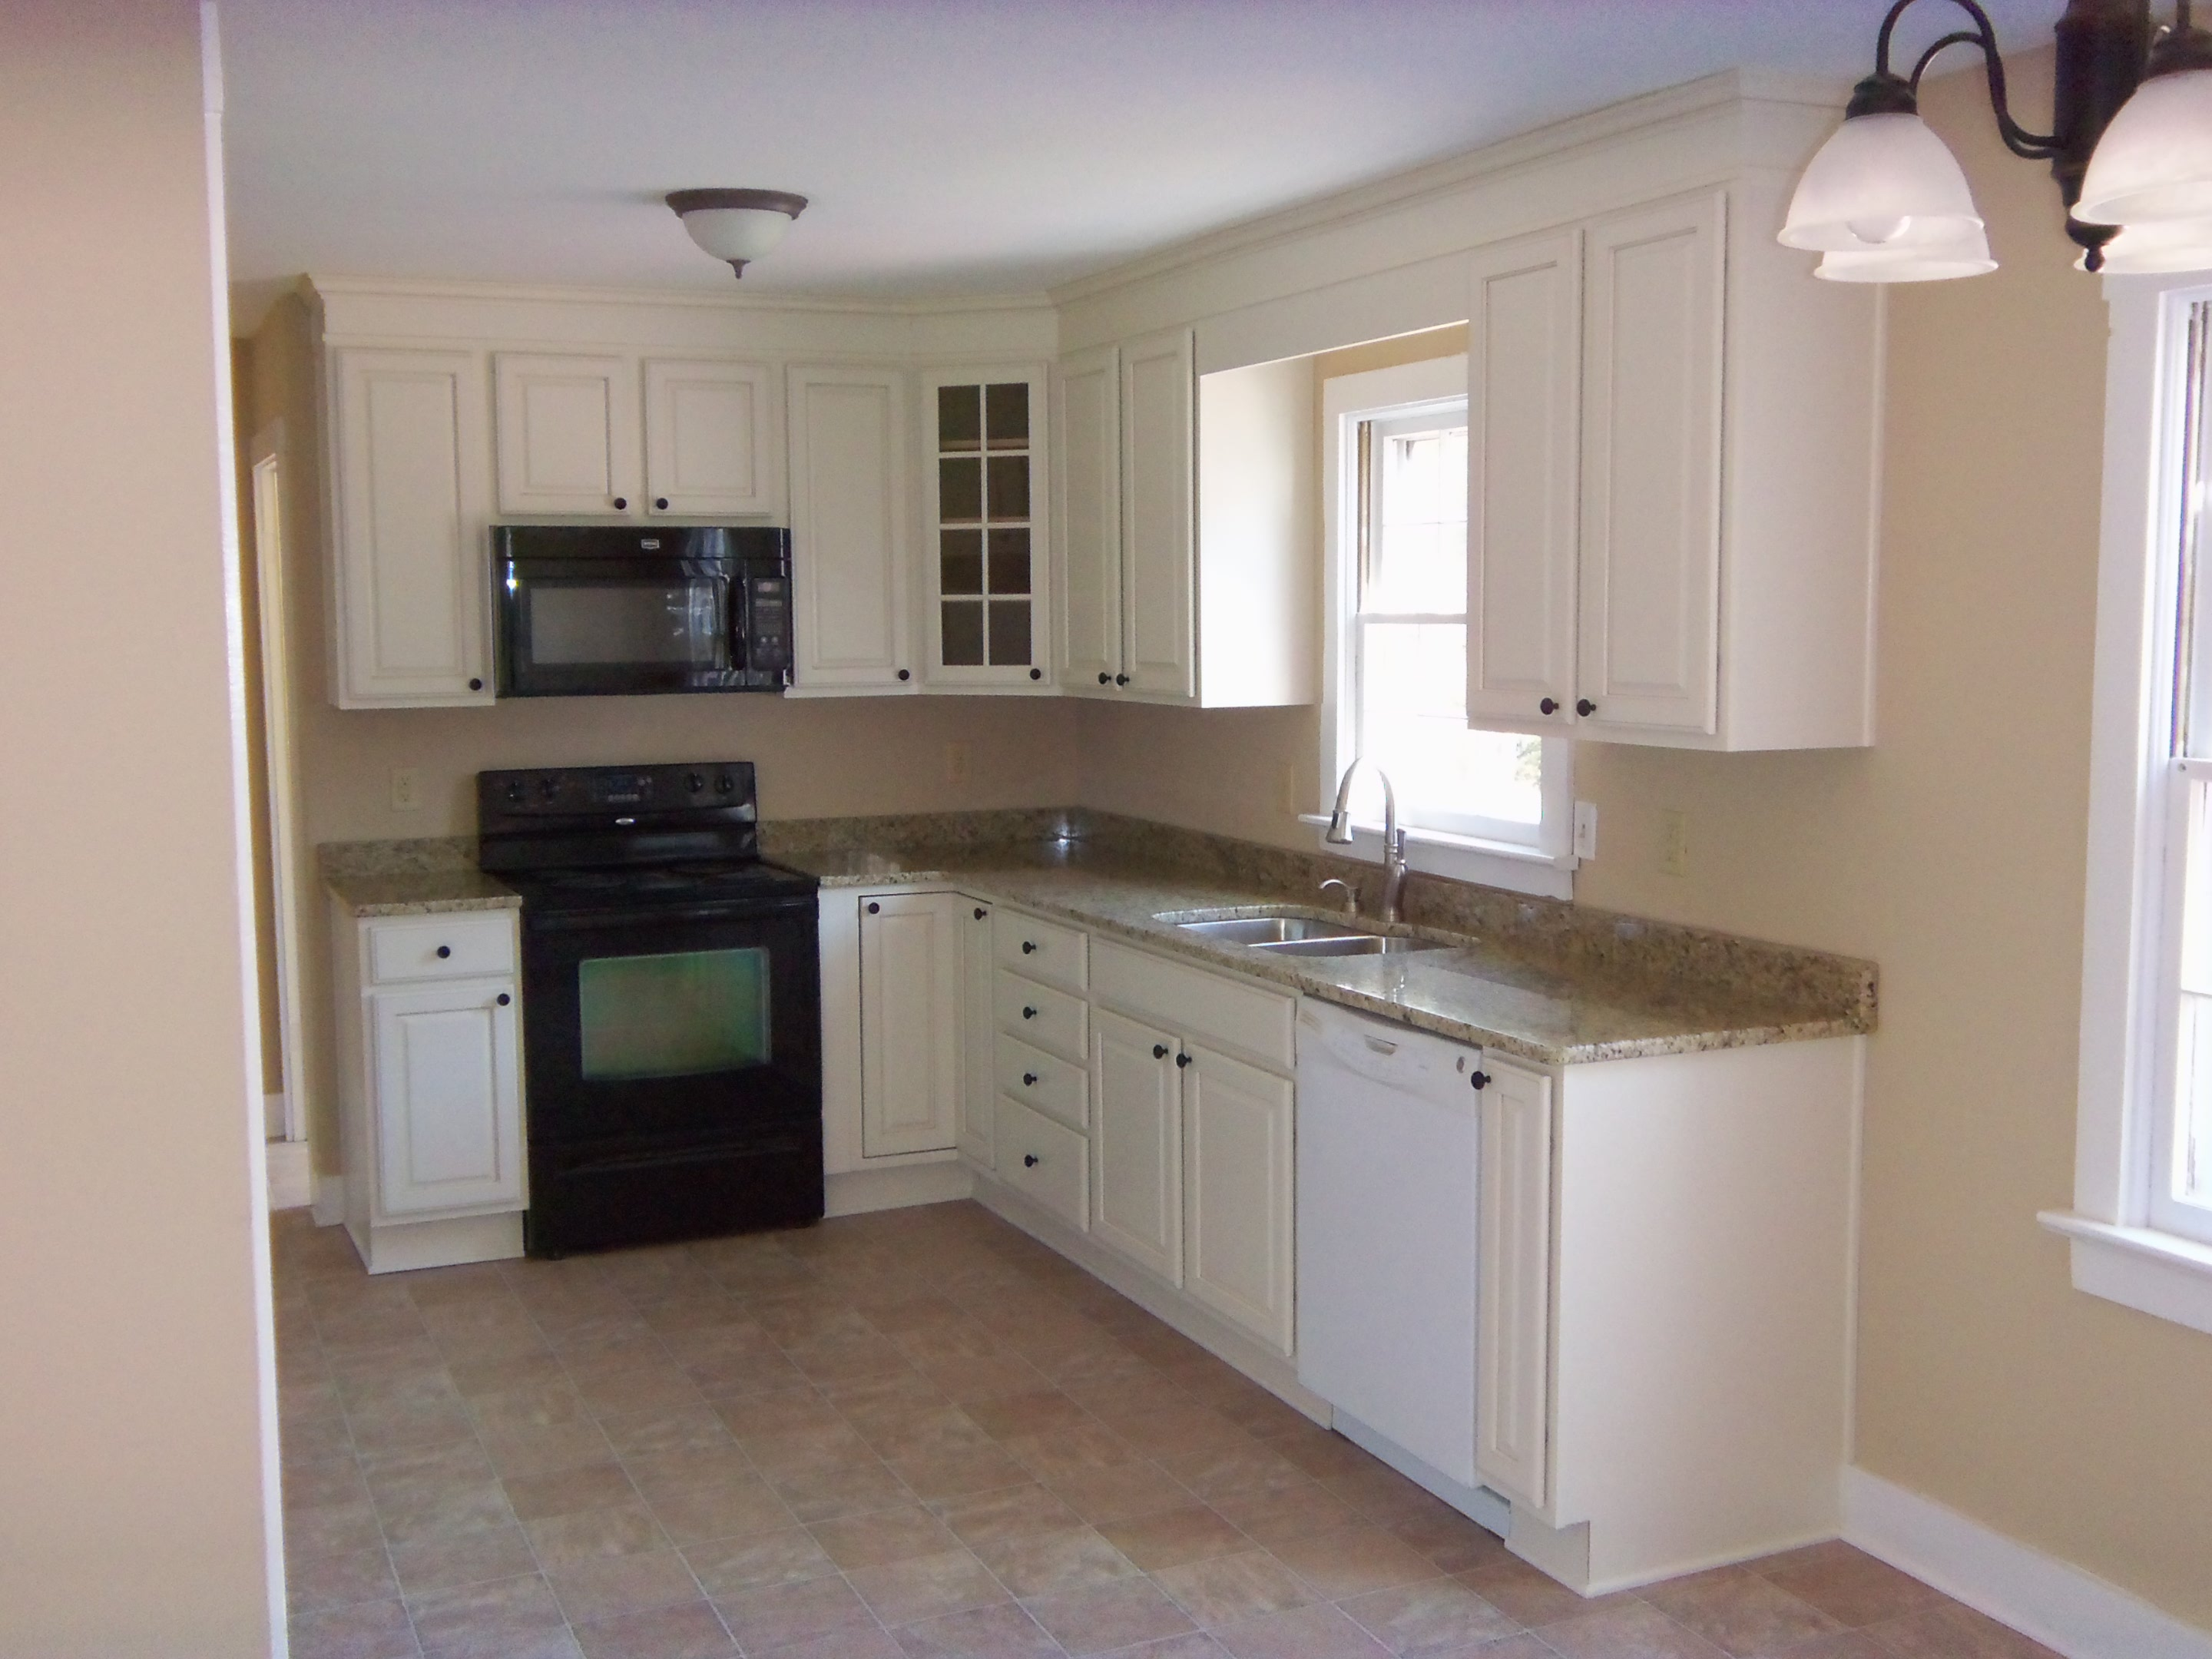 L Shaped Kitchen Designs With Island Remodeling A Very Small L Shaped Kitchen Design My